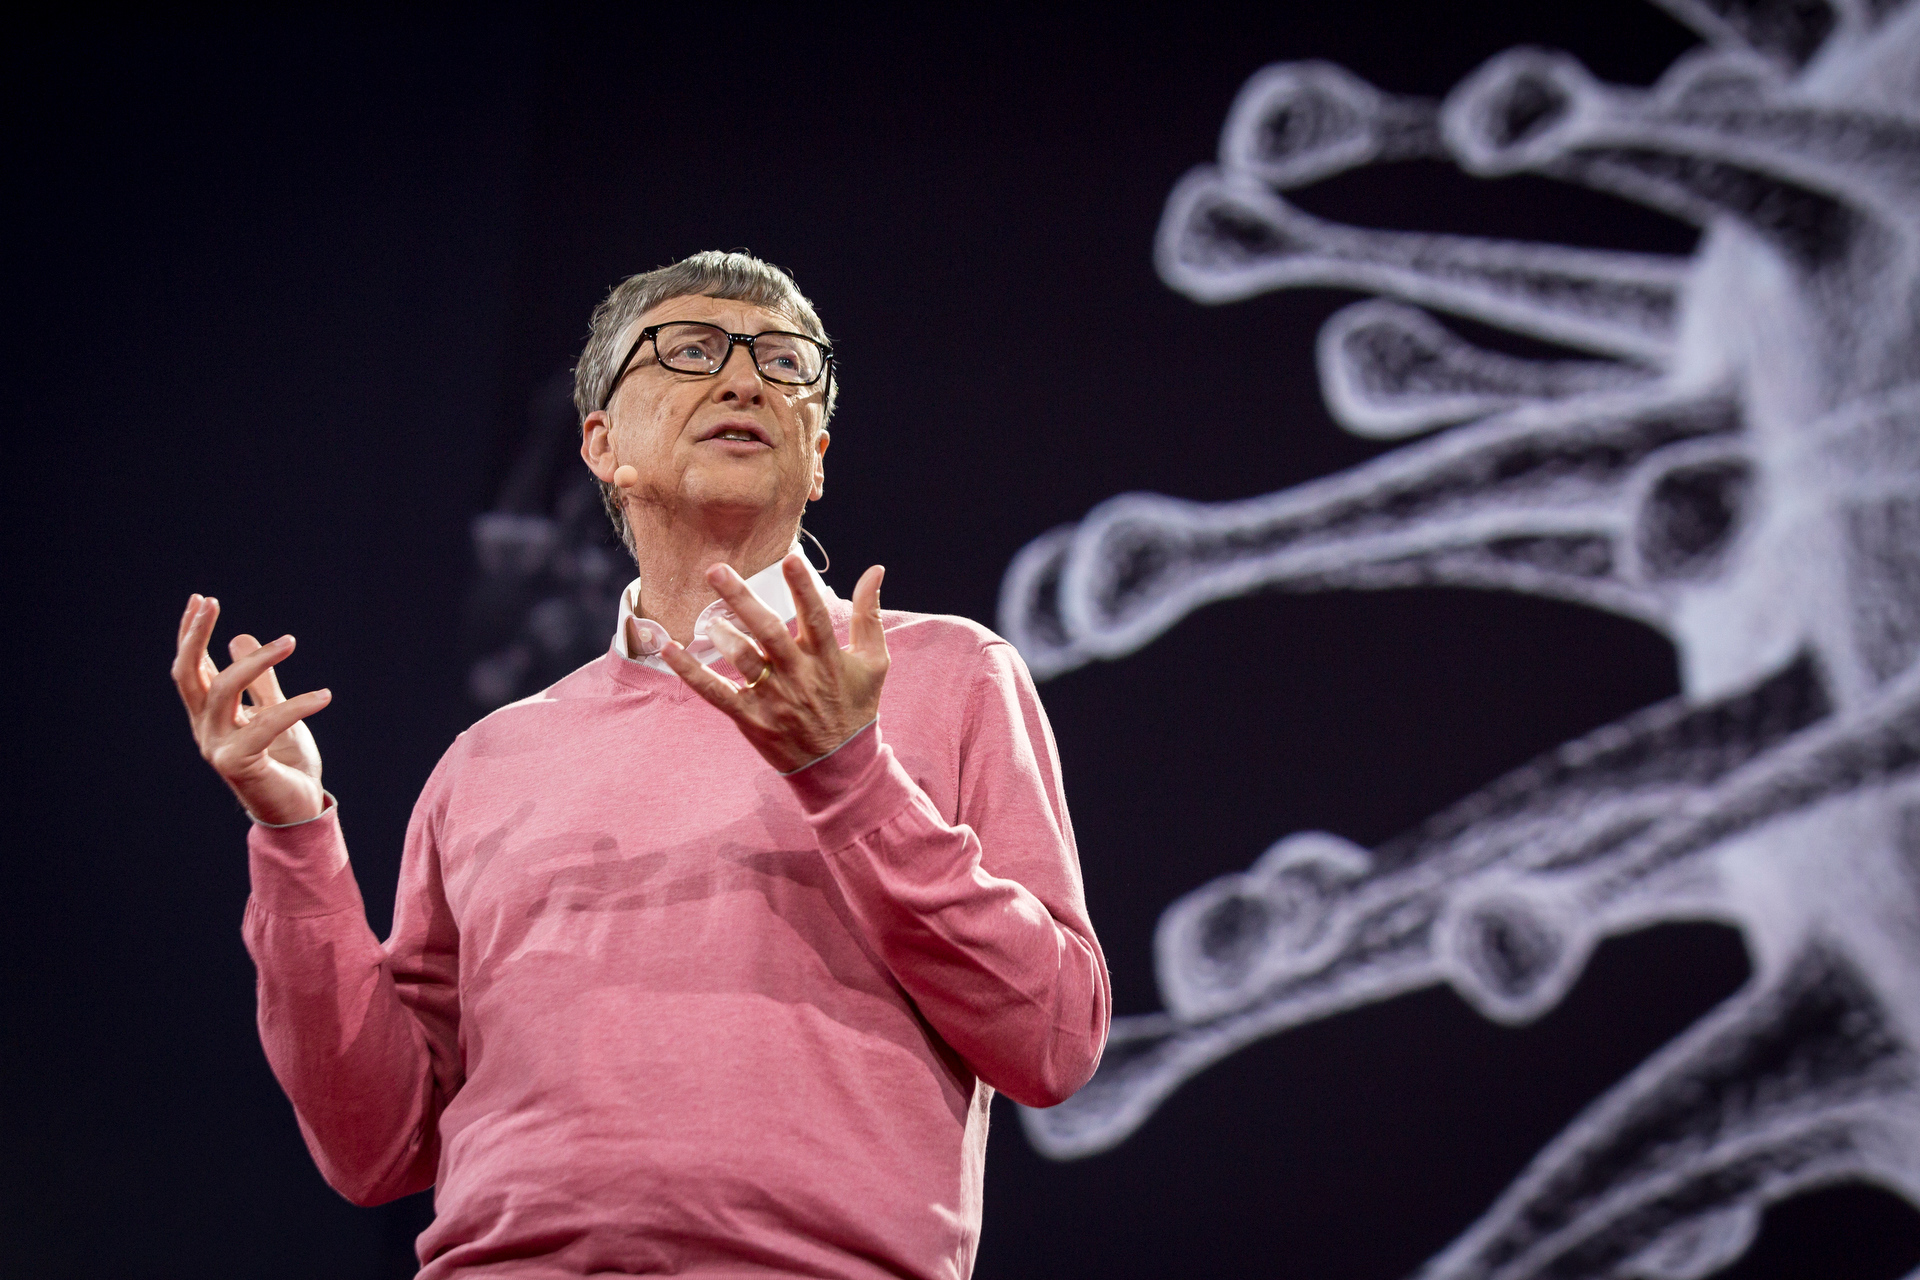 Bill Gates speaks at TED2015 - Truth and Dare, TED University. Photo: Bret Hartman/TED